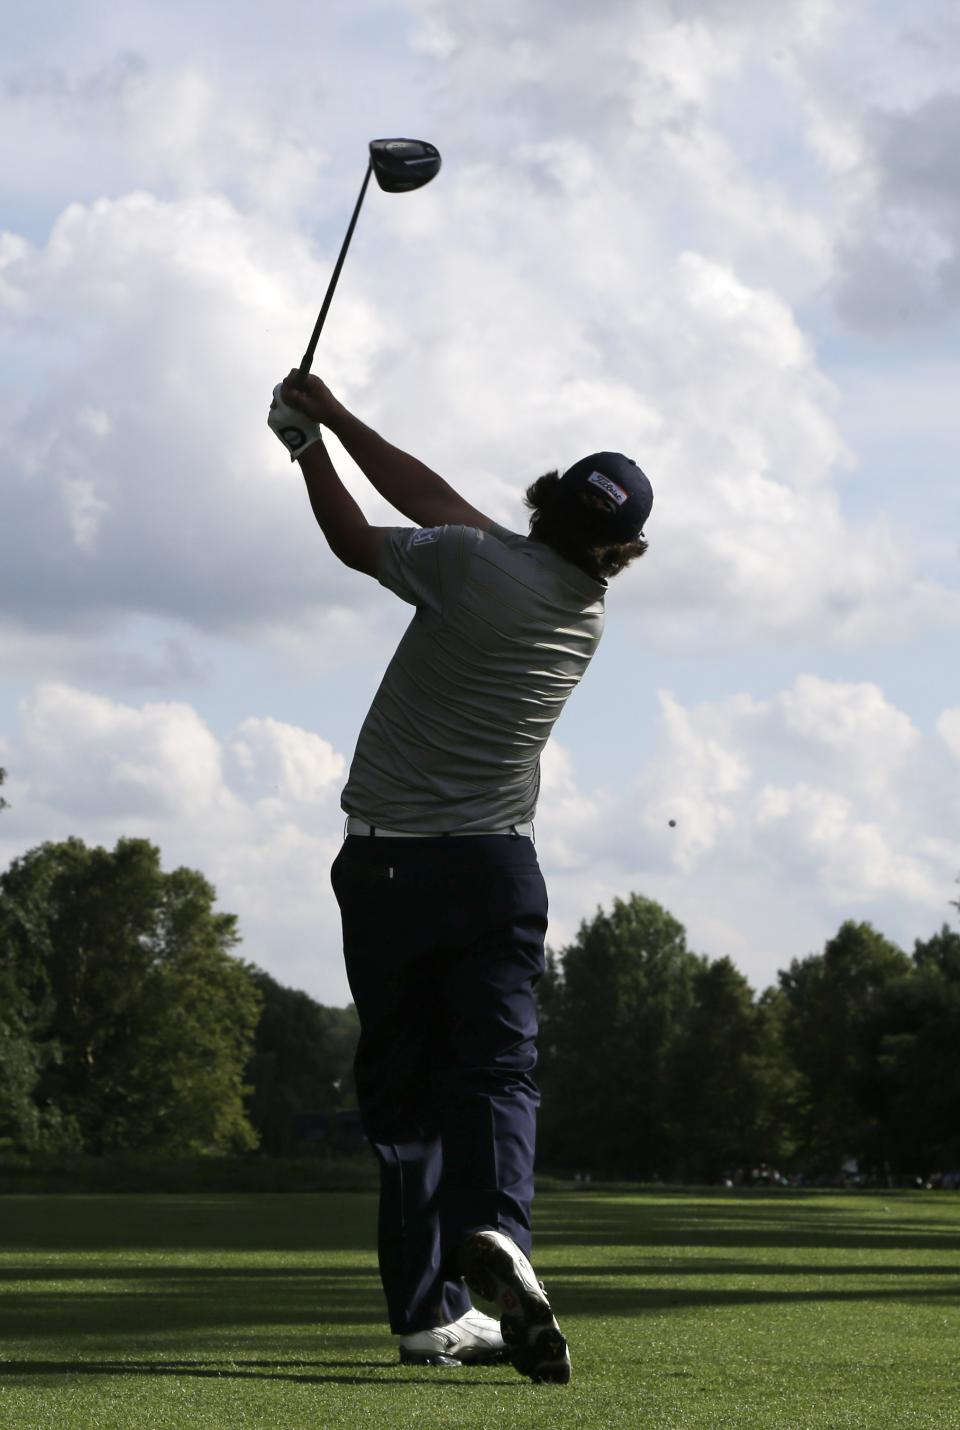 Jason Dufner watches his tee shot on the 16th hole during the second round of the PGA Championship golf tournament at Oak Hill Country Club, Friday, Aug. 9, 2013, in Pittsford, N.Y. (AP Photo/Charlie Neibergall)